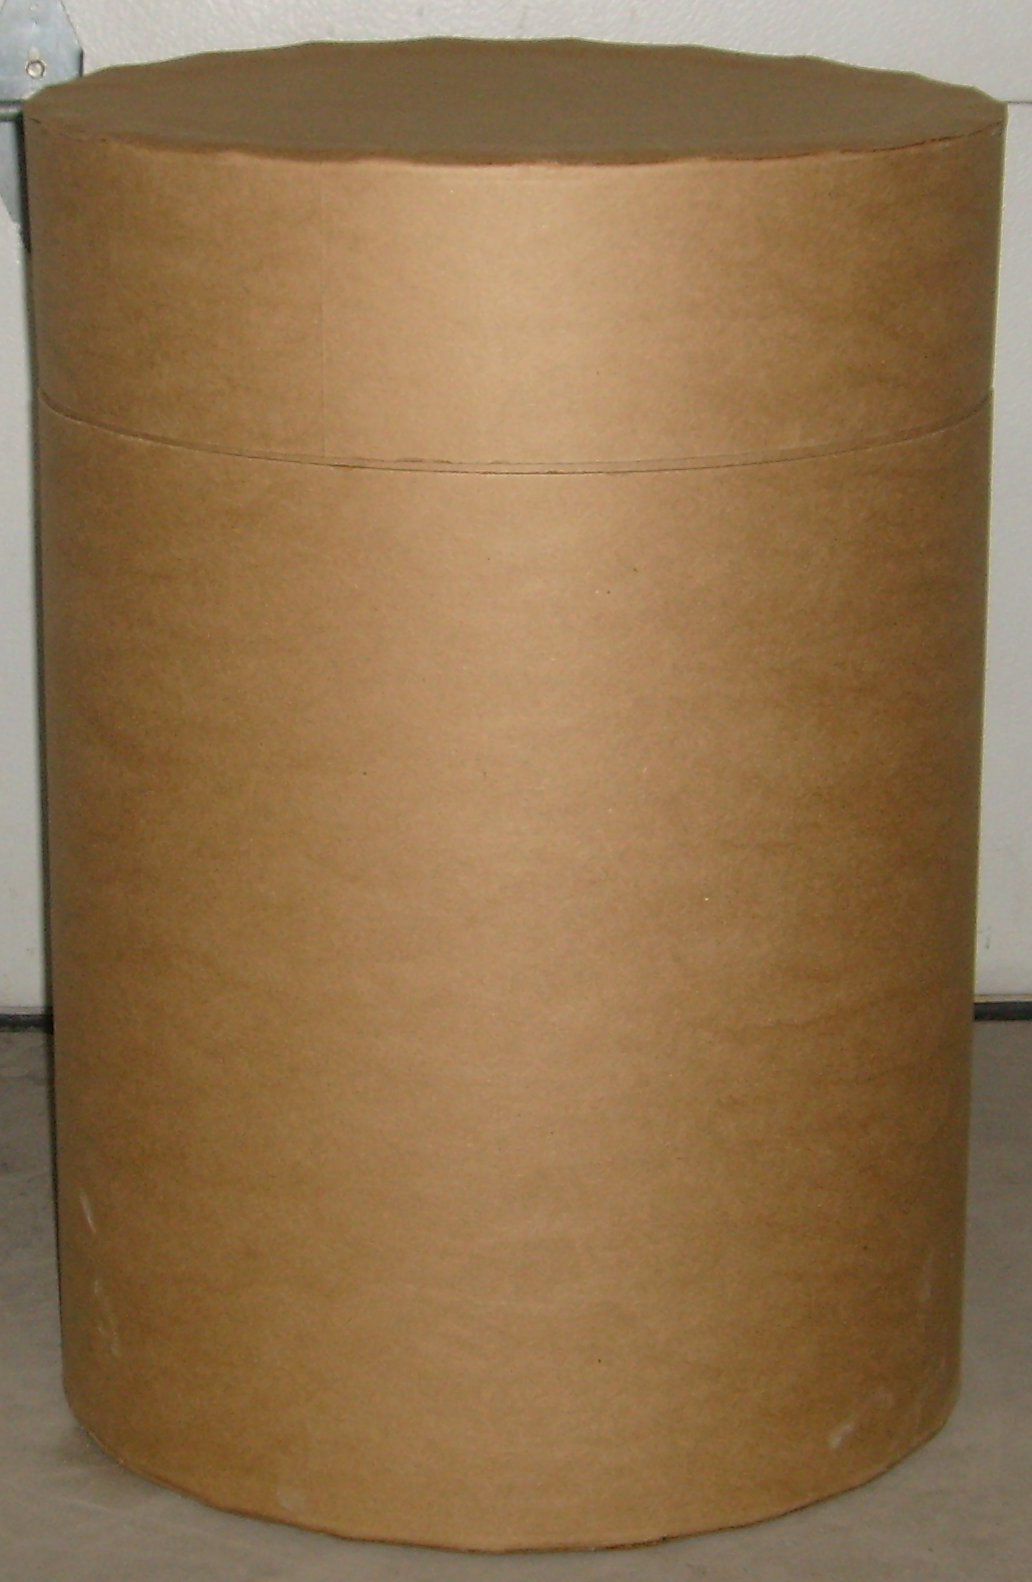 198830GalAllFiber - 30 Gallon, Open Head All-Fiber Drum